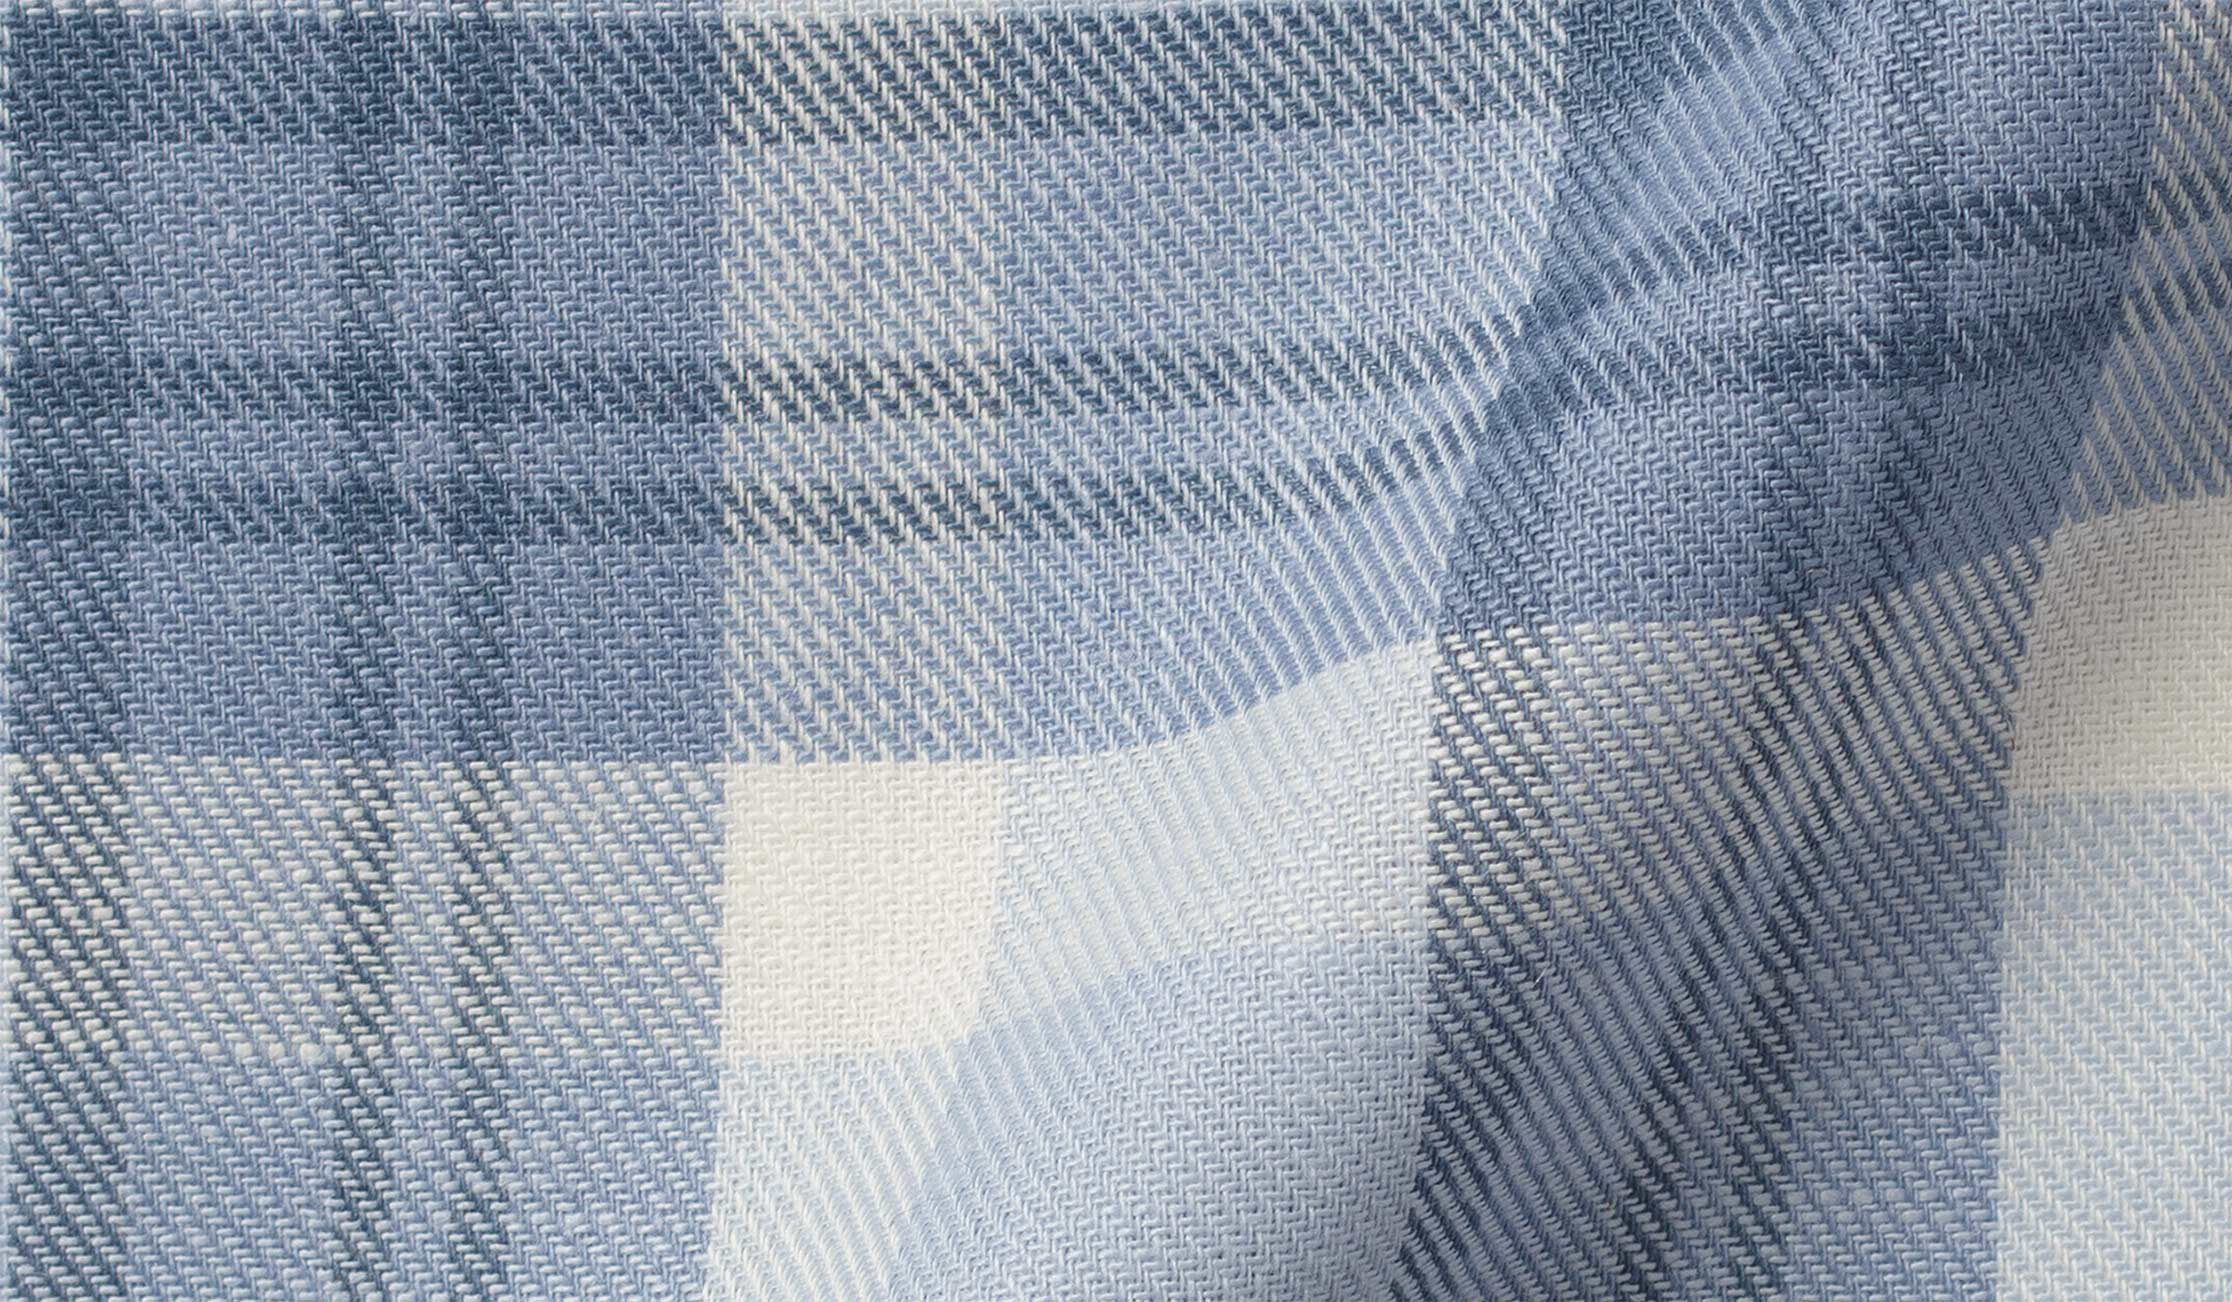 Fabric swatch of Mesa Faded Blue Cotton and Linen Plaid Fabric